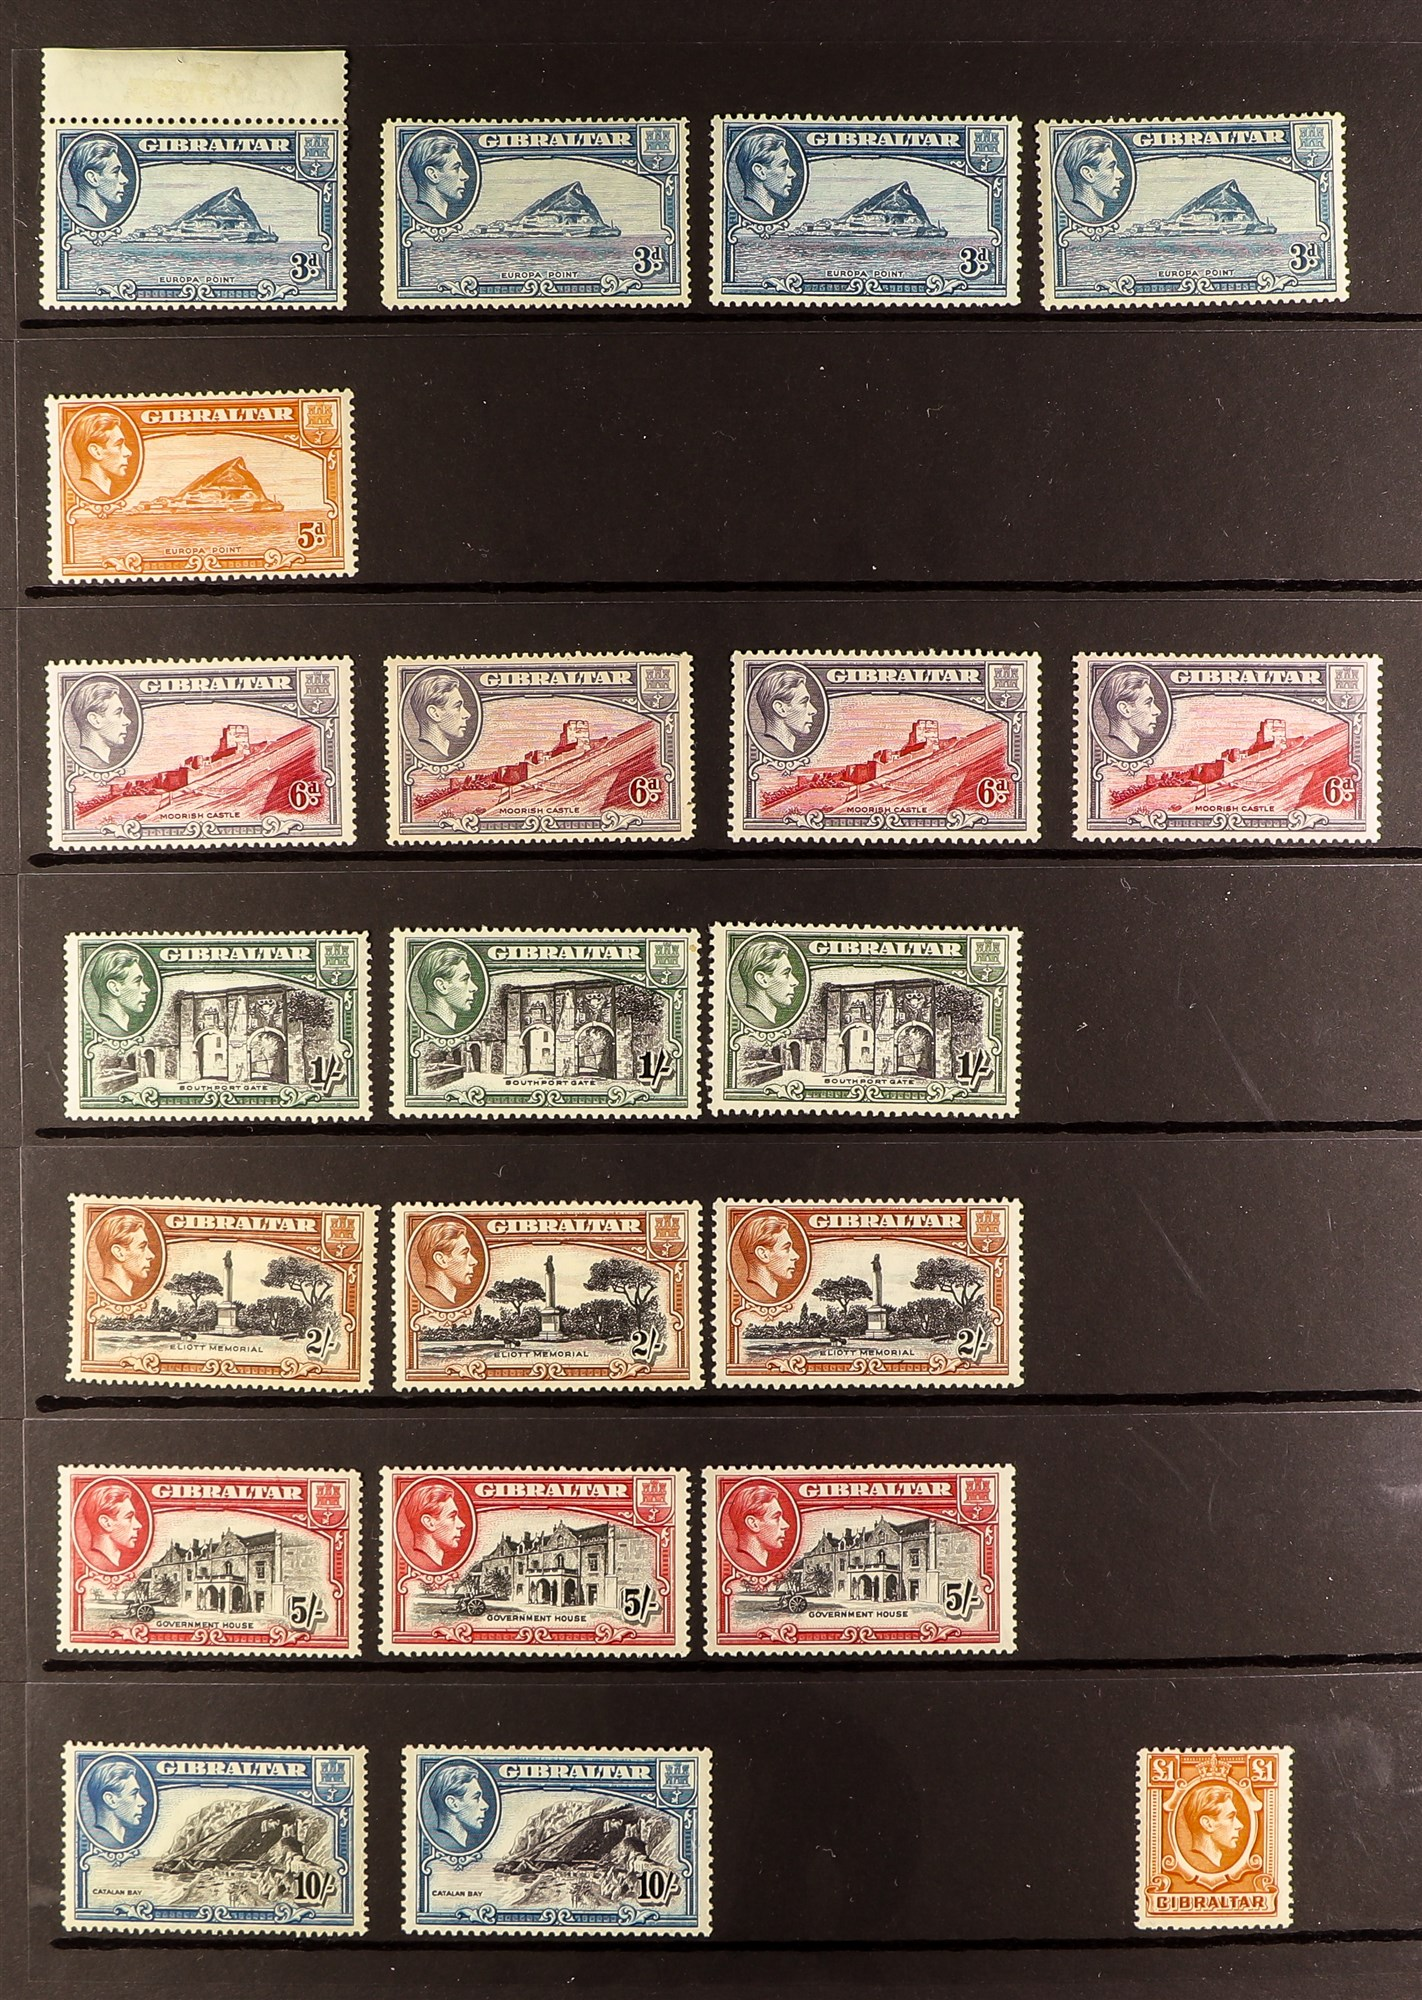 GIBRALTAR 1937-51 FINE MINT KGVI COLLECTION virtually complete incl. most perf changes and most - Image 2 of 3